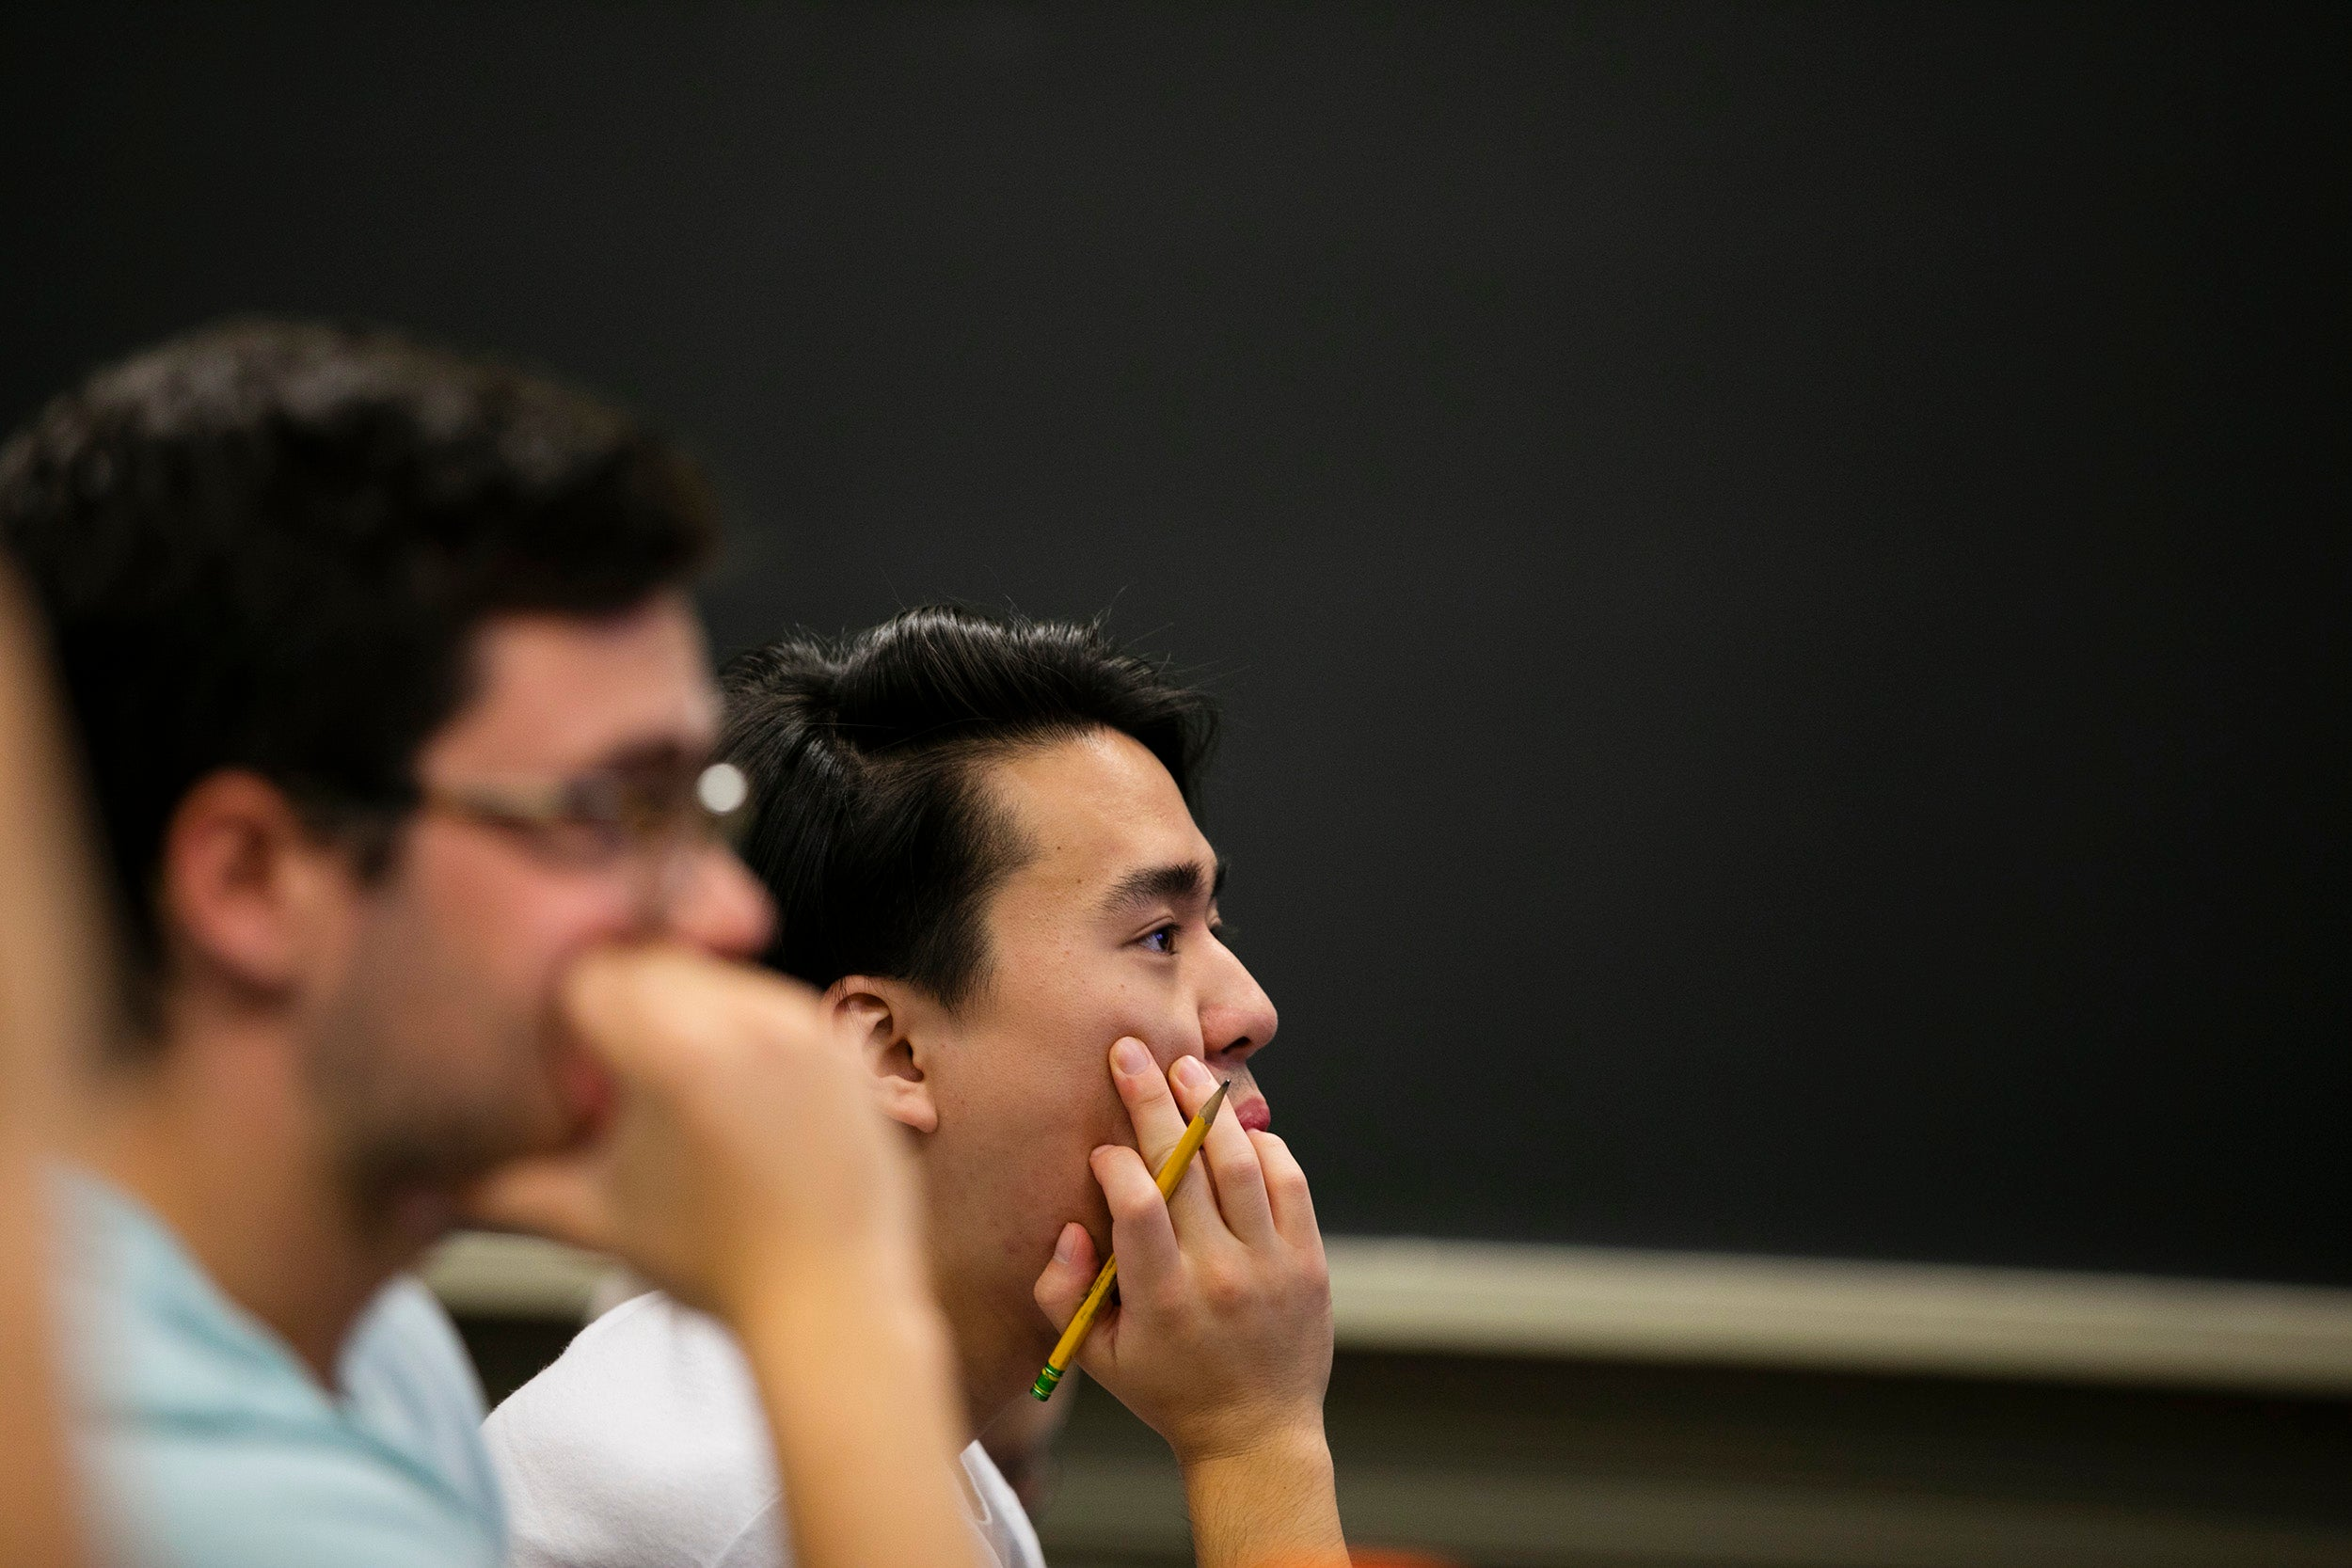 Students listen during class.